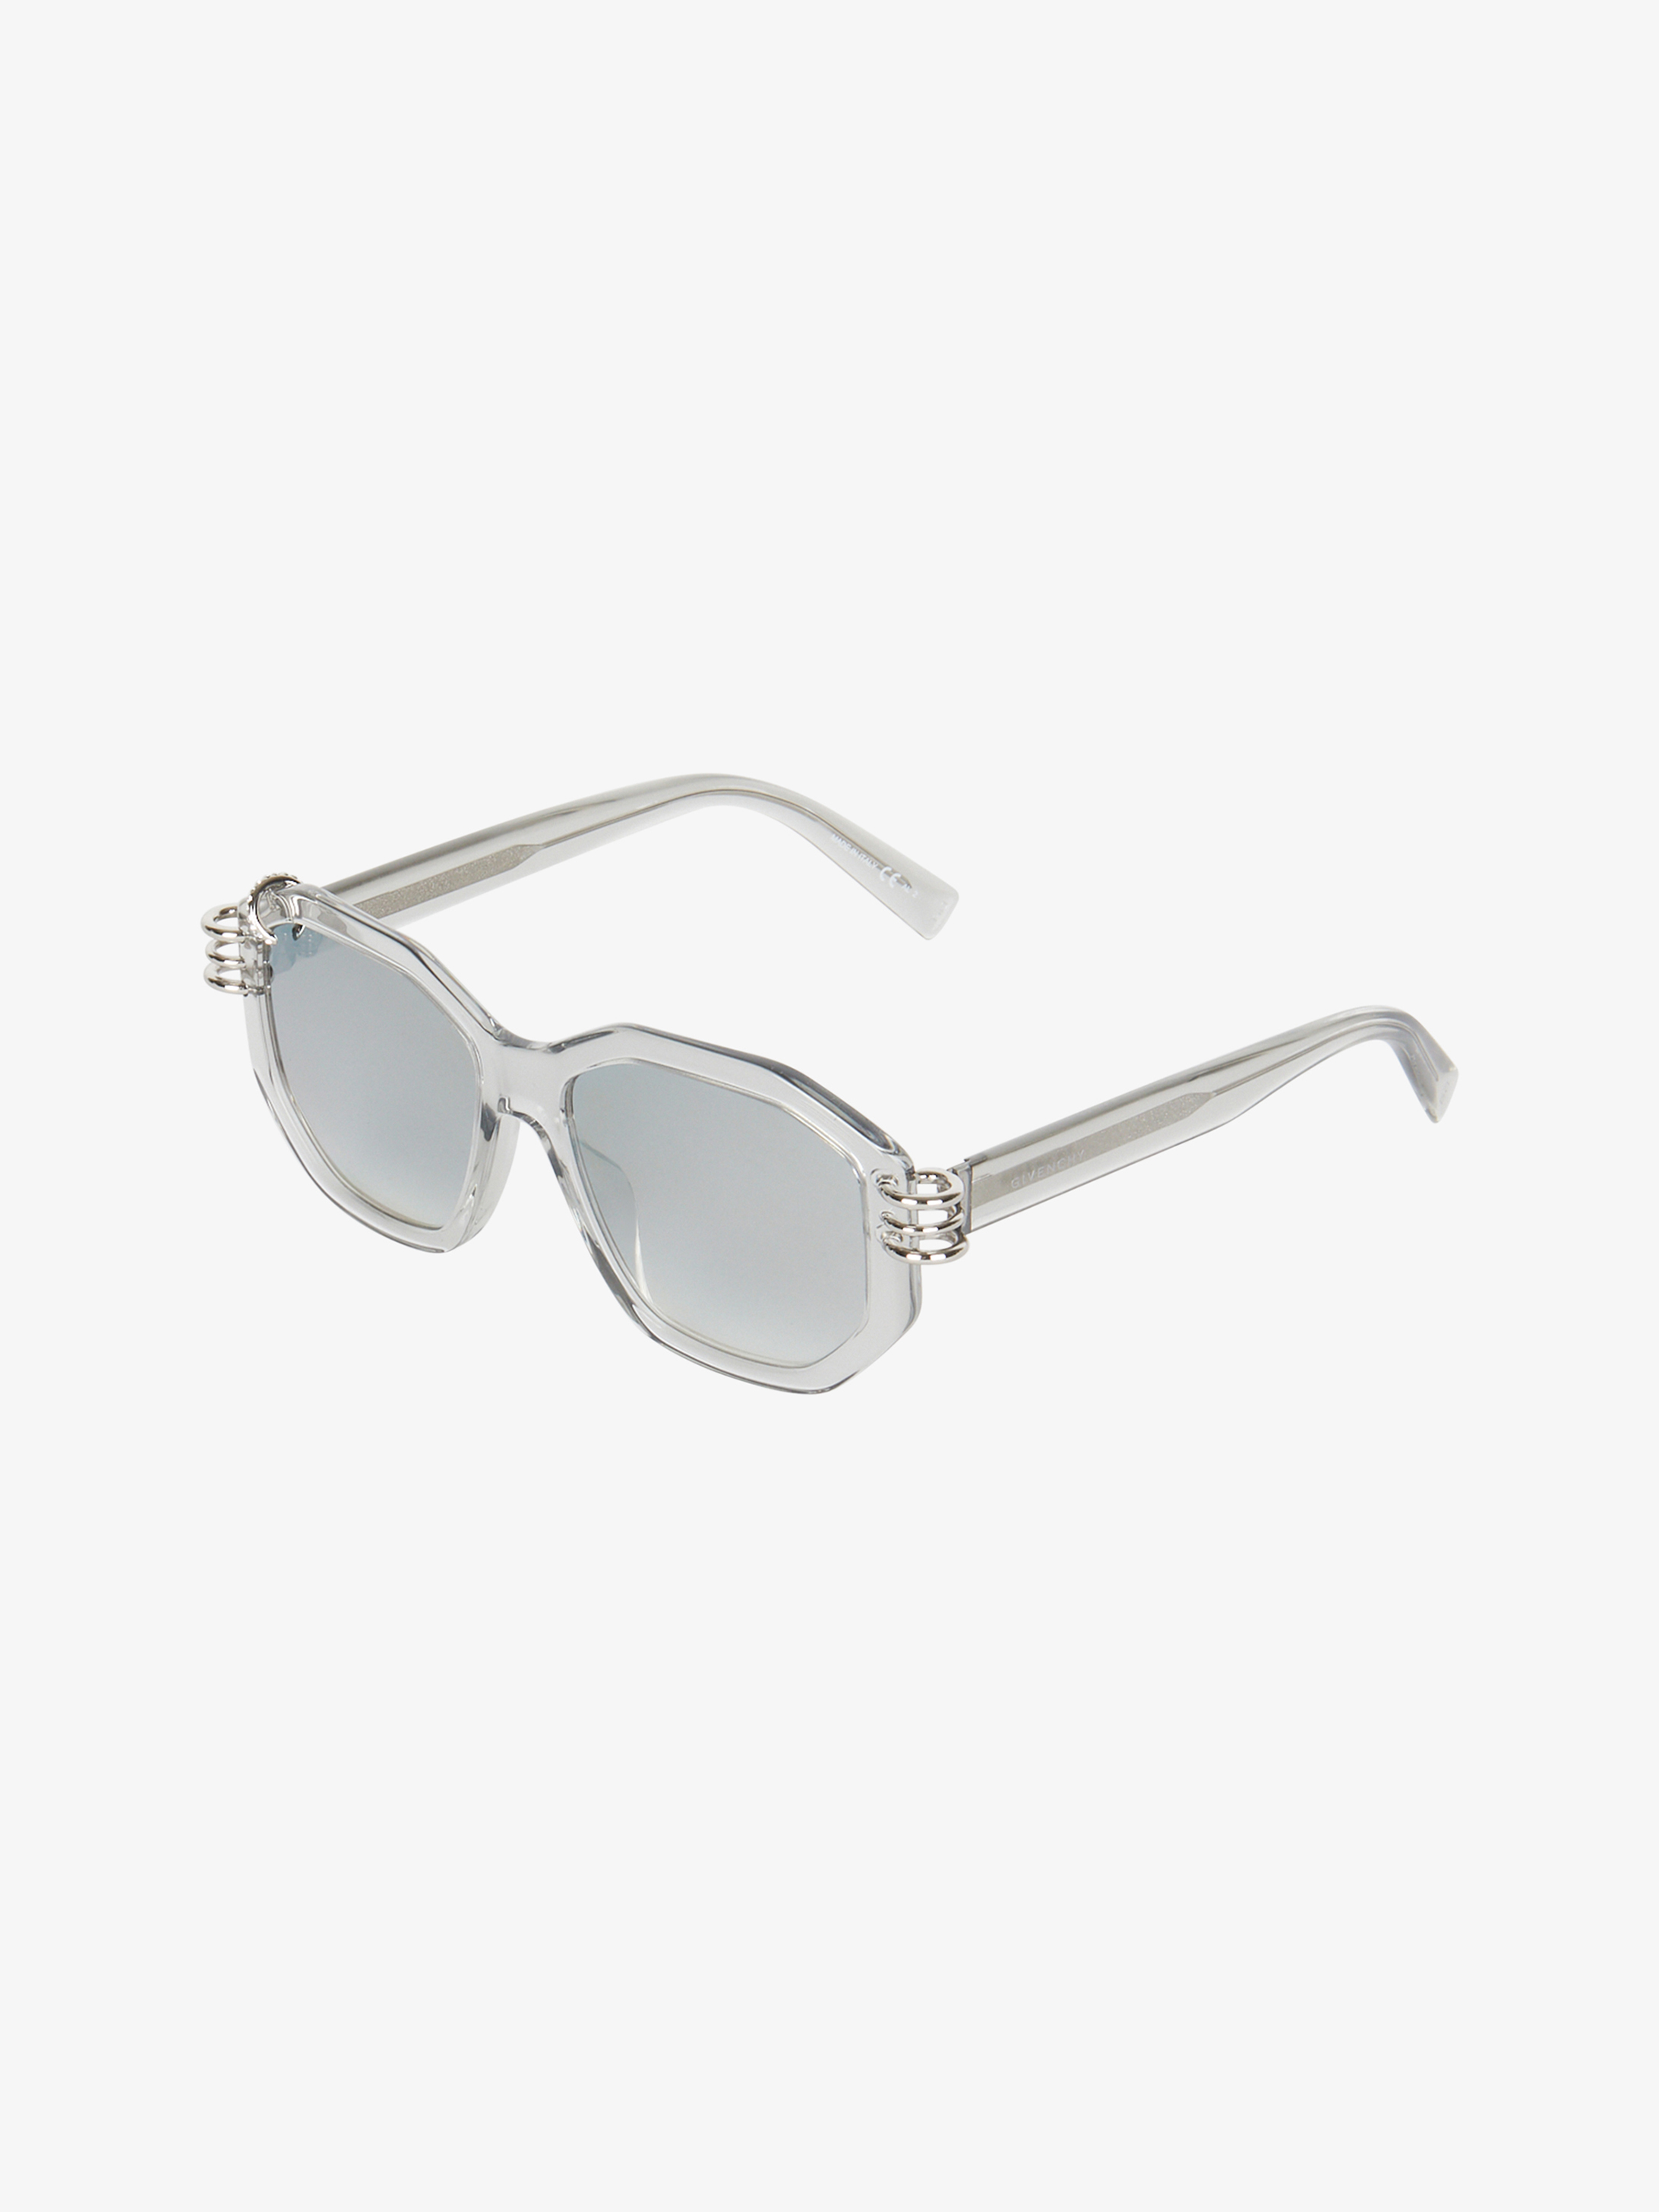 GV Piercing  unisex sunglasses in acetate